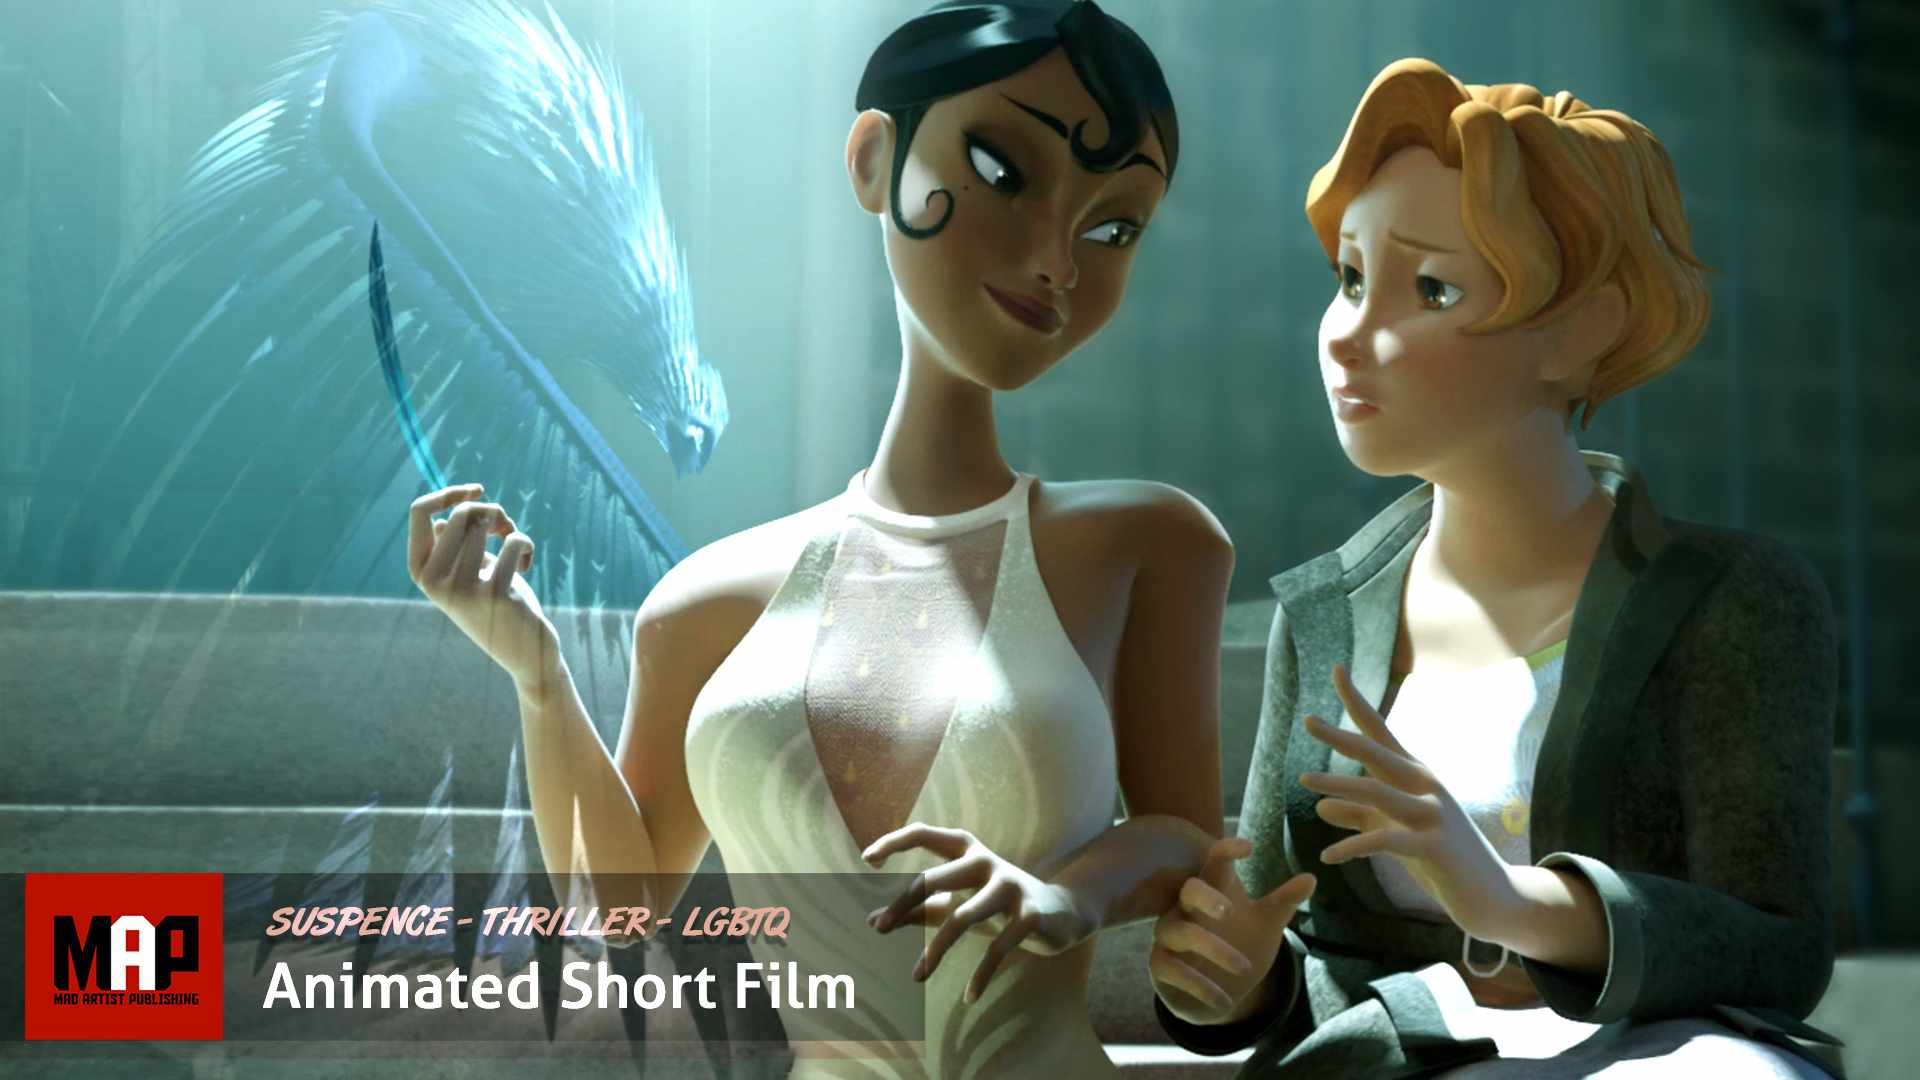 CGI 3d Animated Short Film ** TENTATRICE ** Suspence Thriller